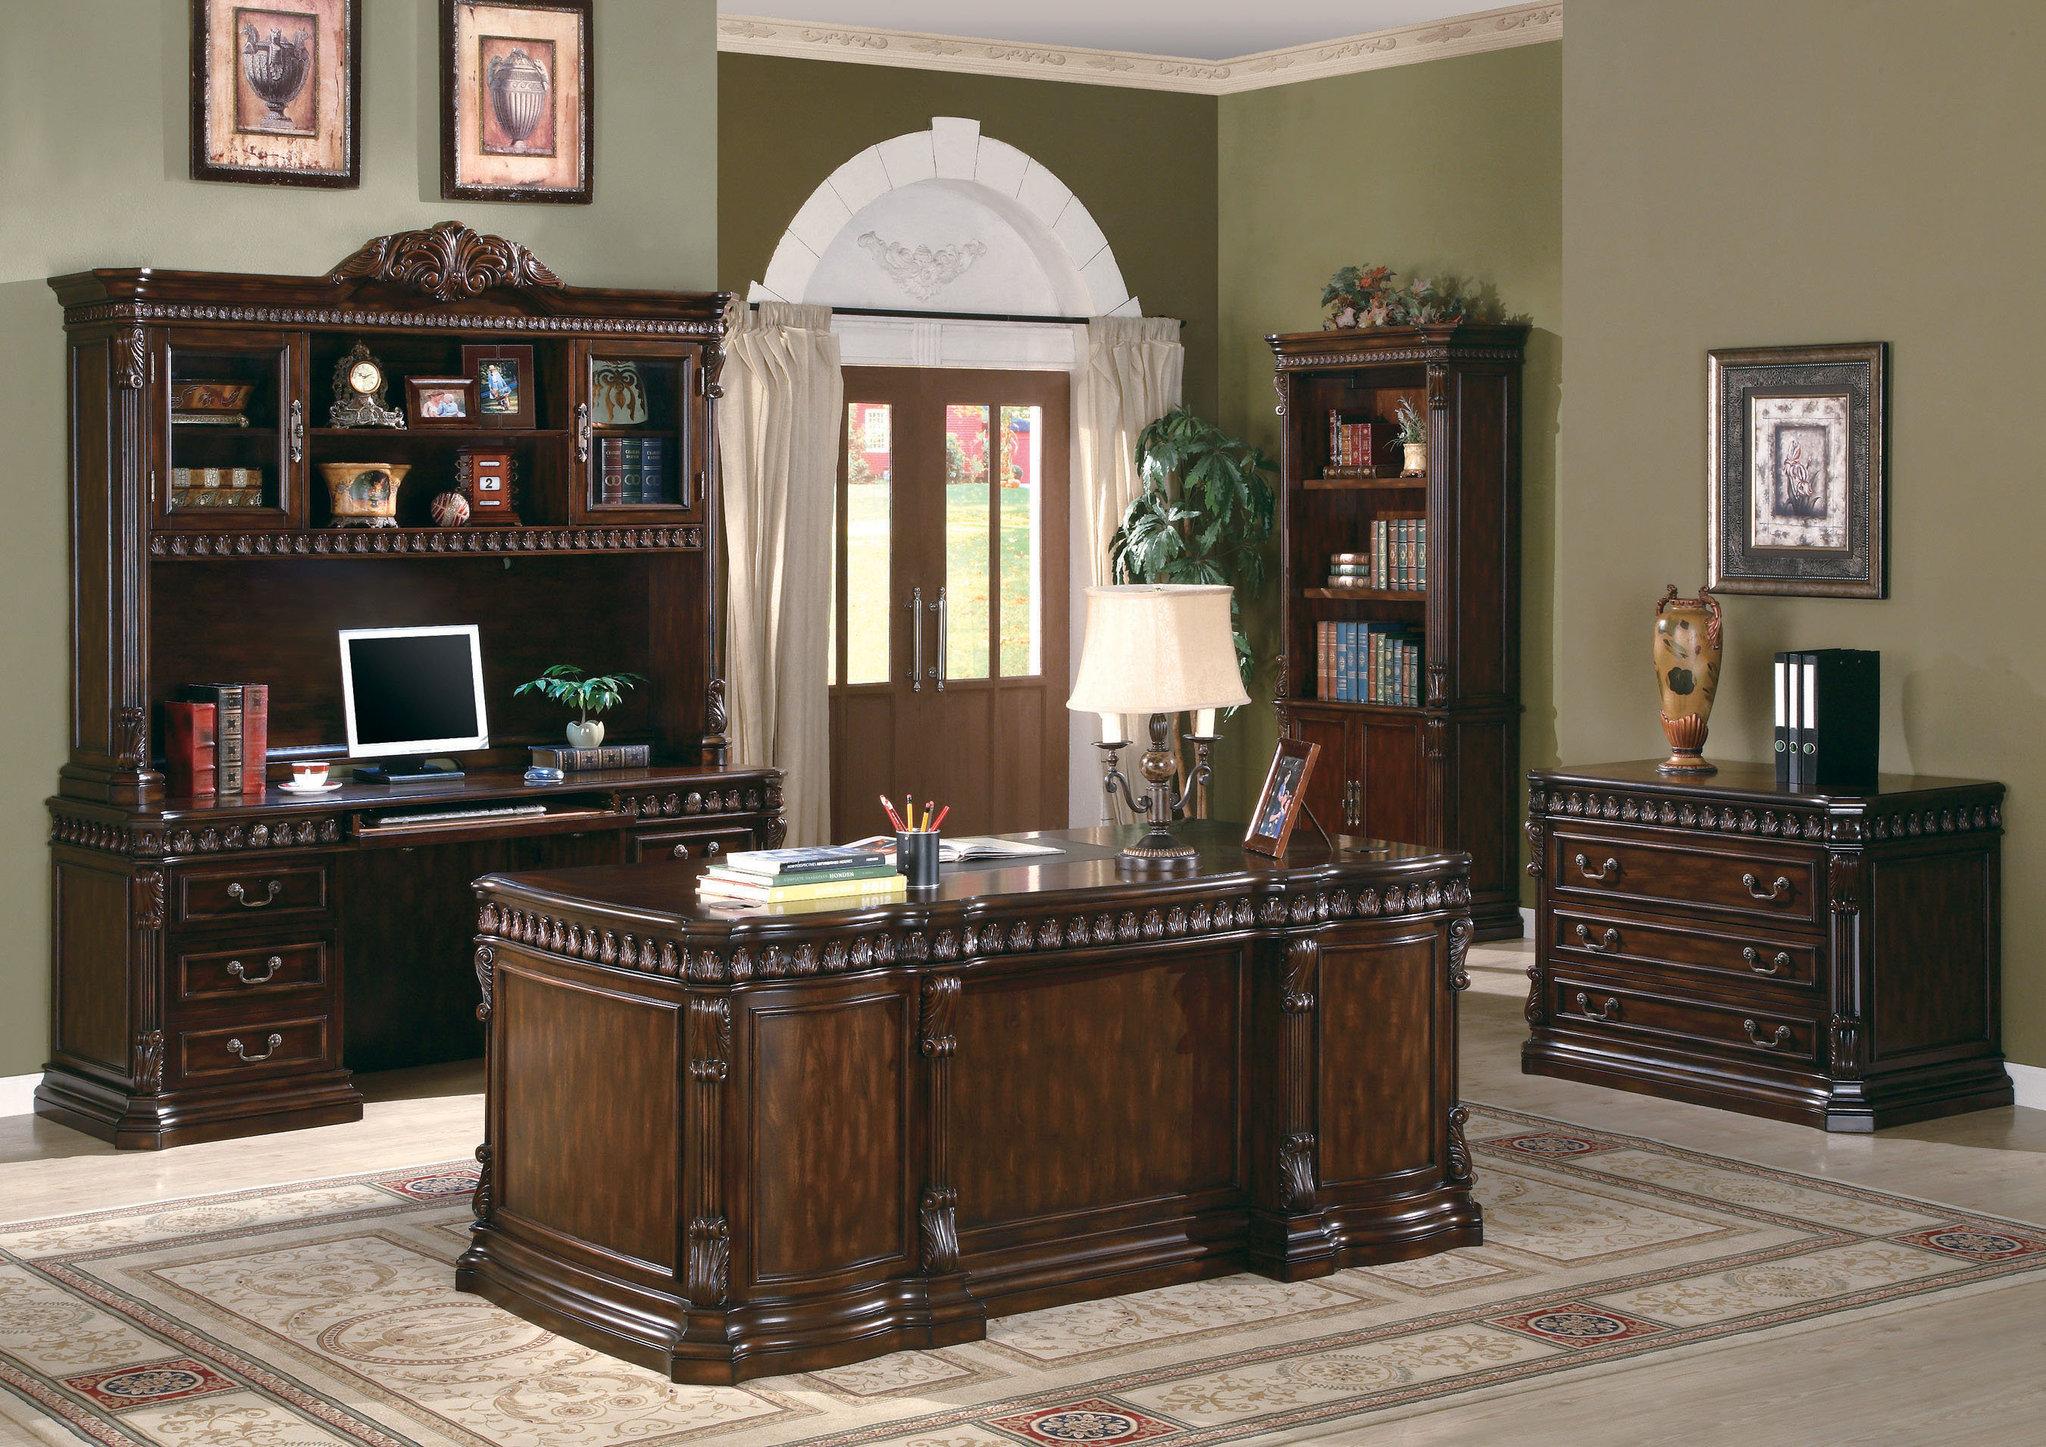 Home office furniture from Villa Park traditional desk made of carved wood Home office furniture set in LBPIUNV